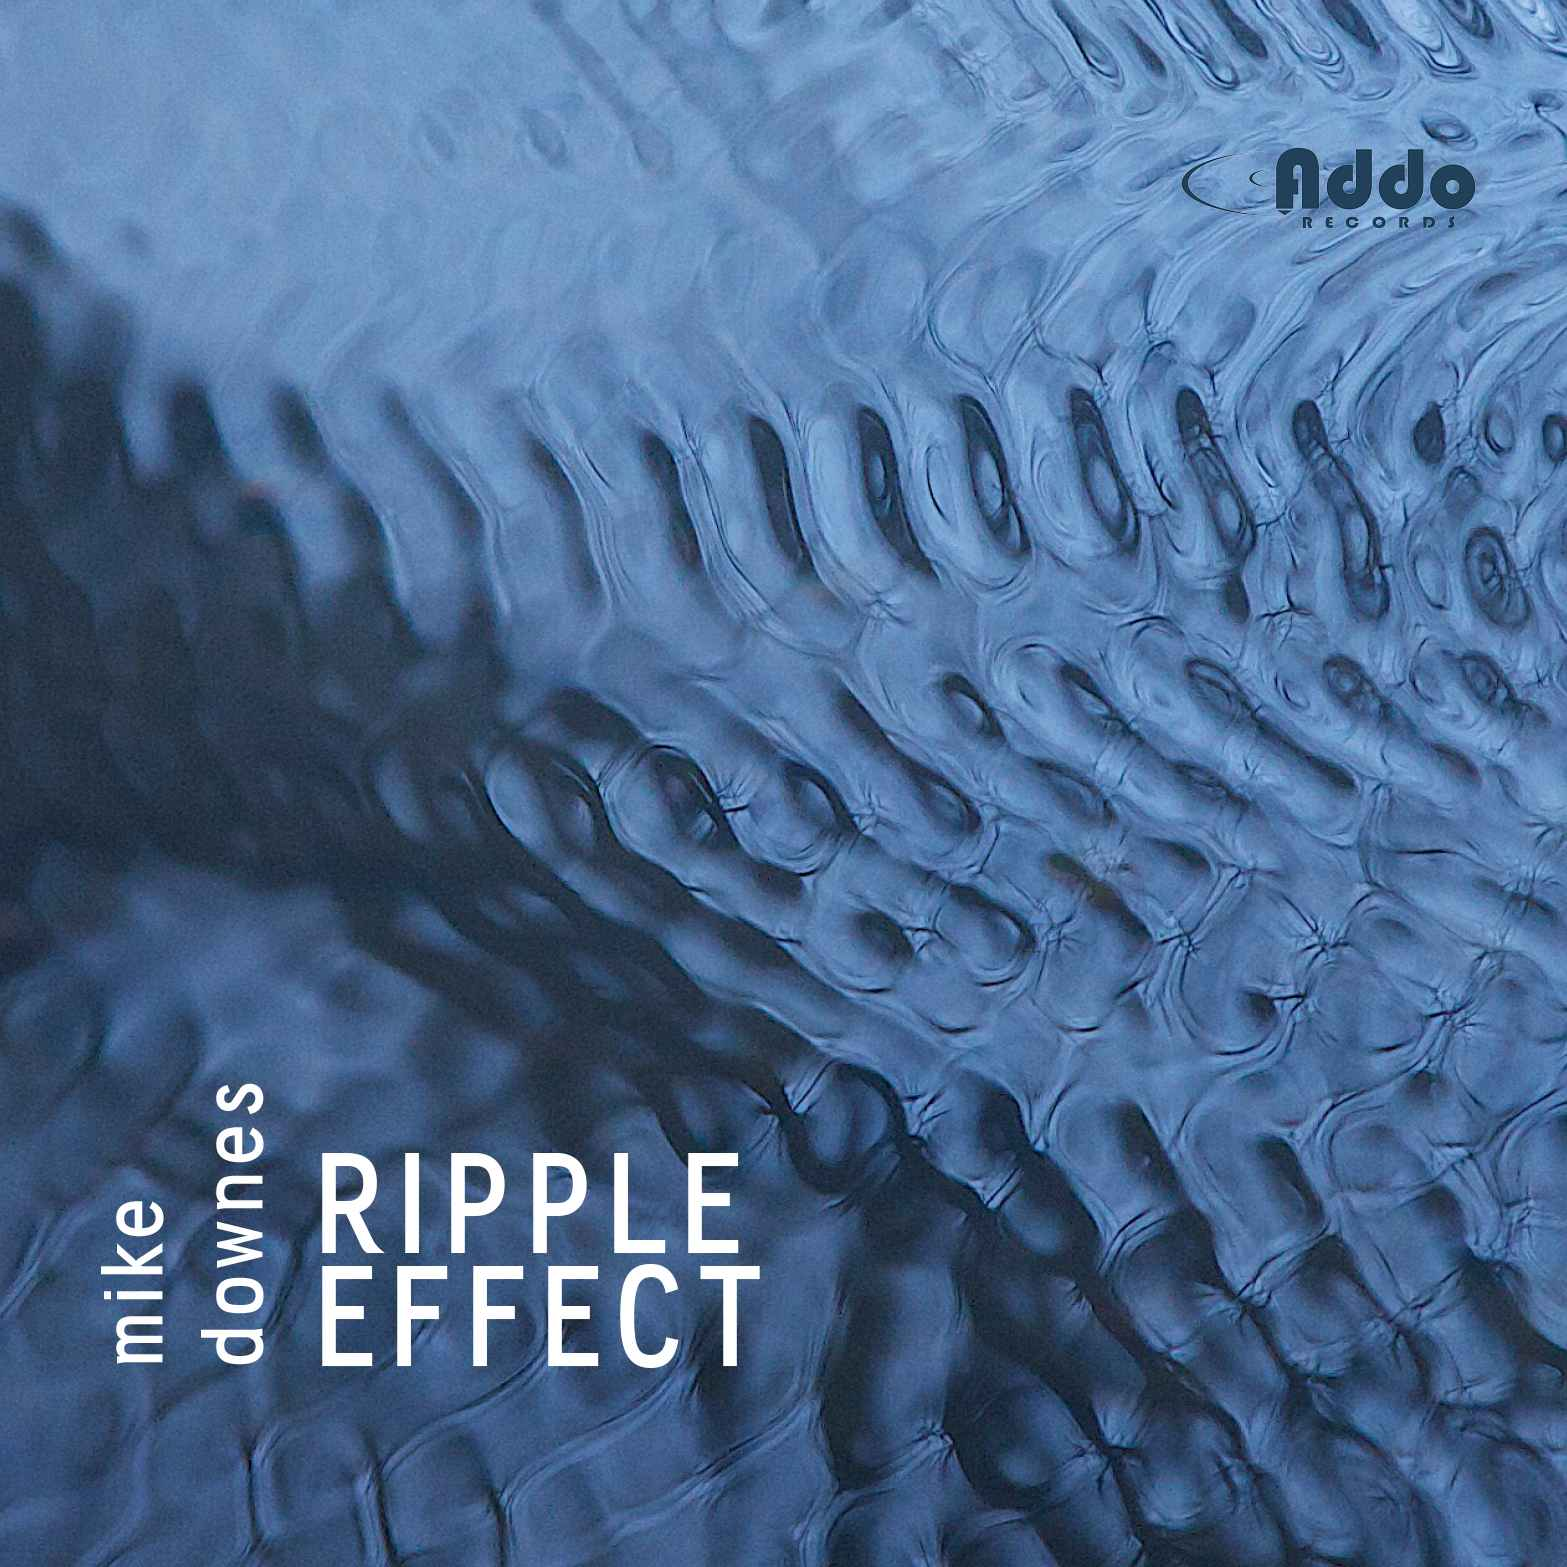 Mike Downes - Ripple Effect